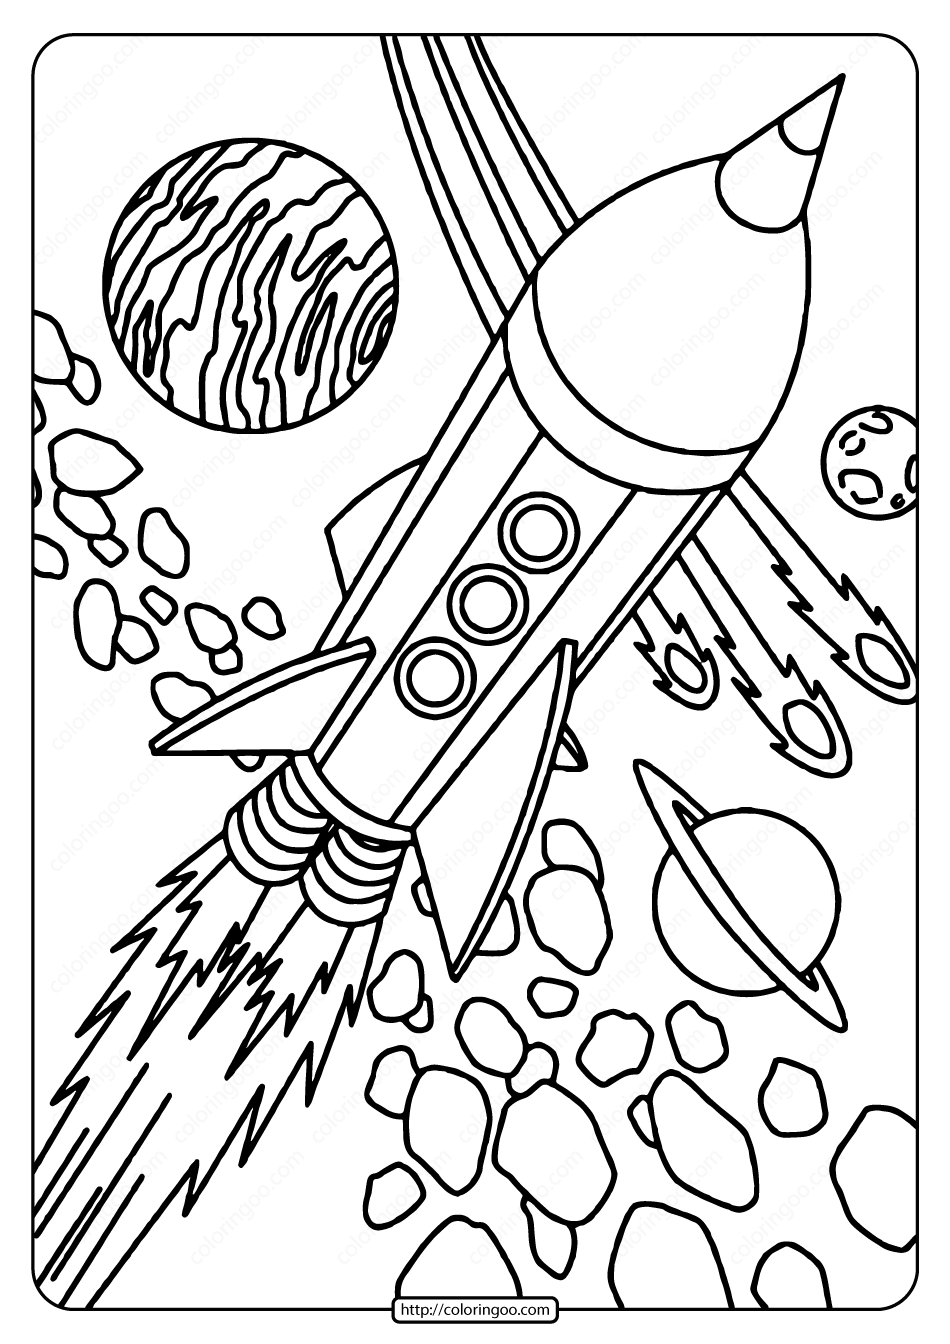 free spaceship coloring pages rocketships with space pods coloring page pages coloring free spaceship